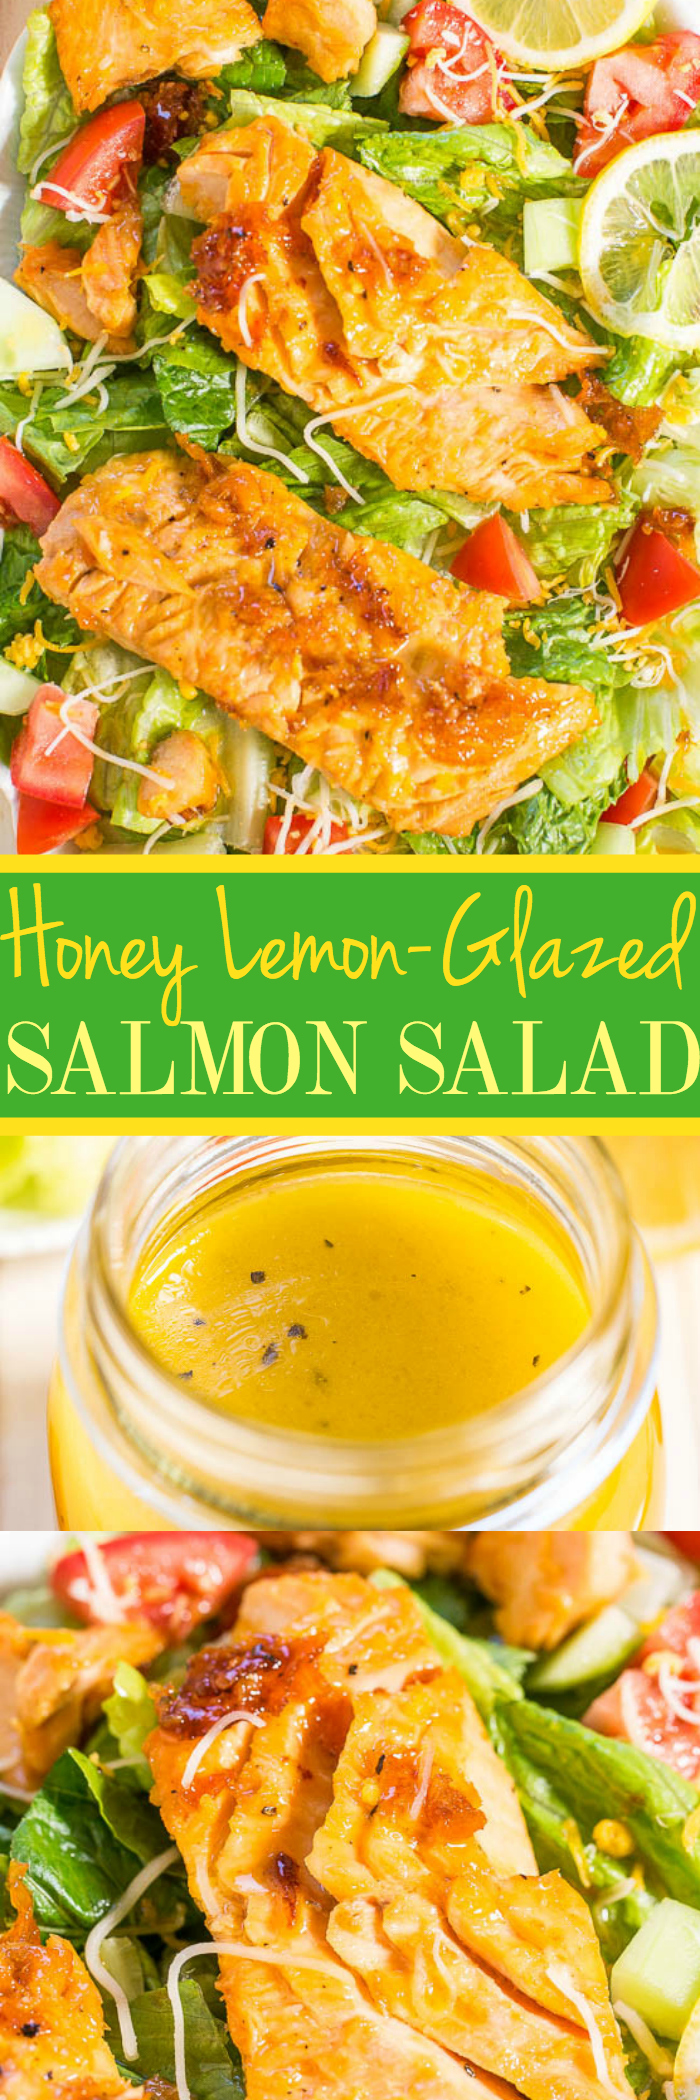 Honey Lemon-Glazed Salmon Salad - Coated with a tangy-sweet glaze that doubles as a light and bright salad vinaigrette! Fast, easy, fresh and healthy!! An awesome 15-minute meal!!